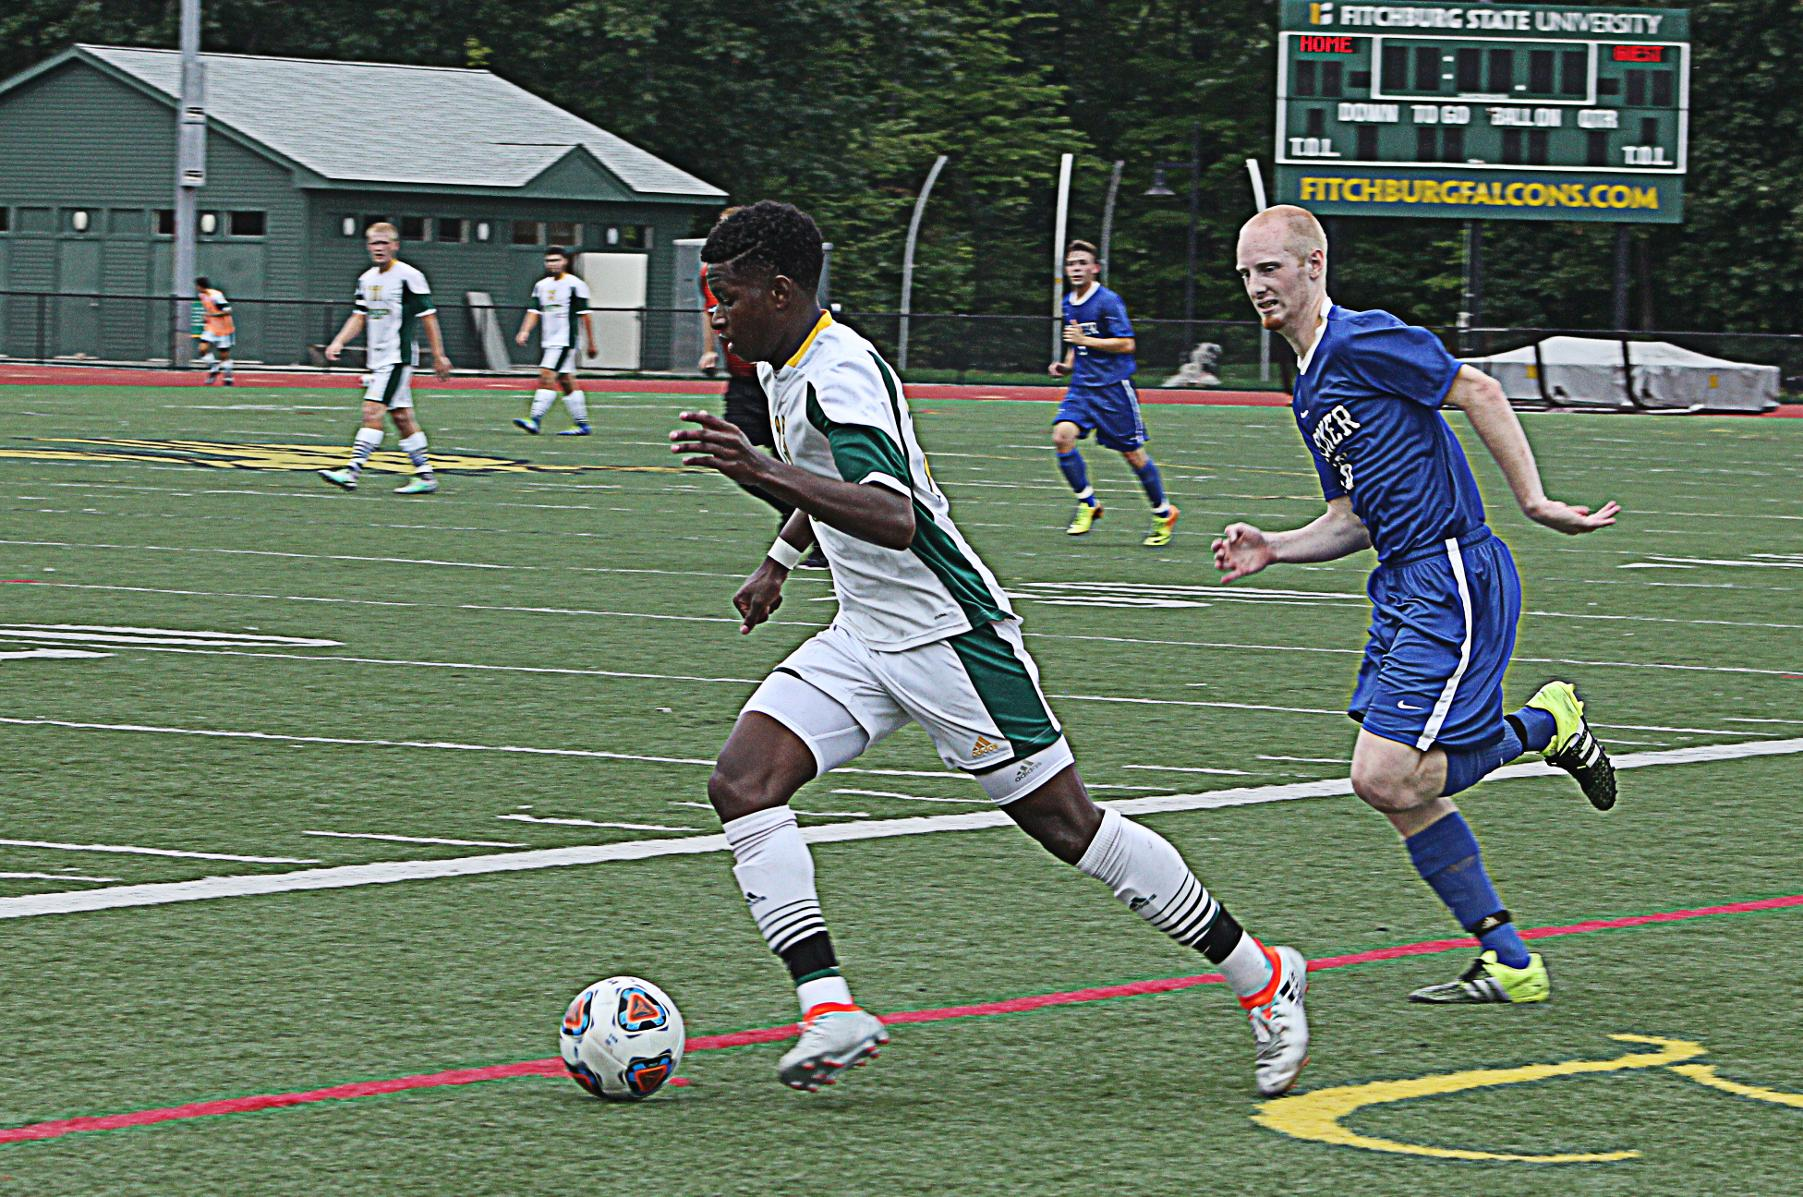 Fitchburg State Rebounds Over Elms, 3-1